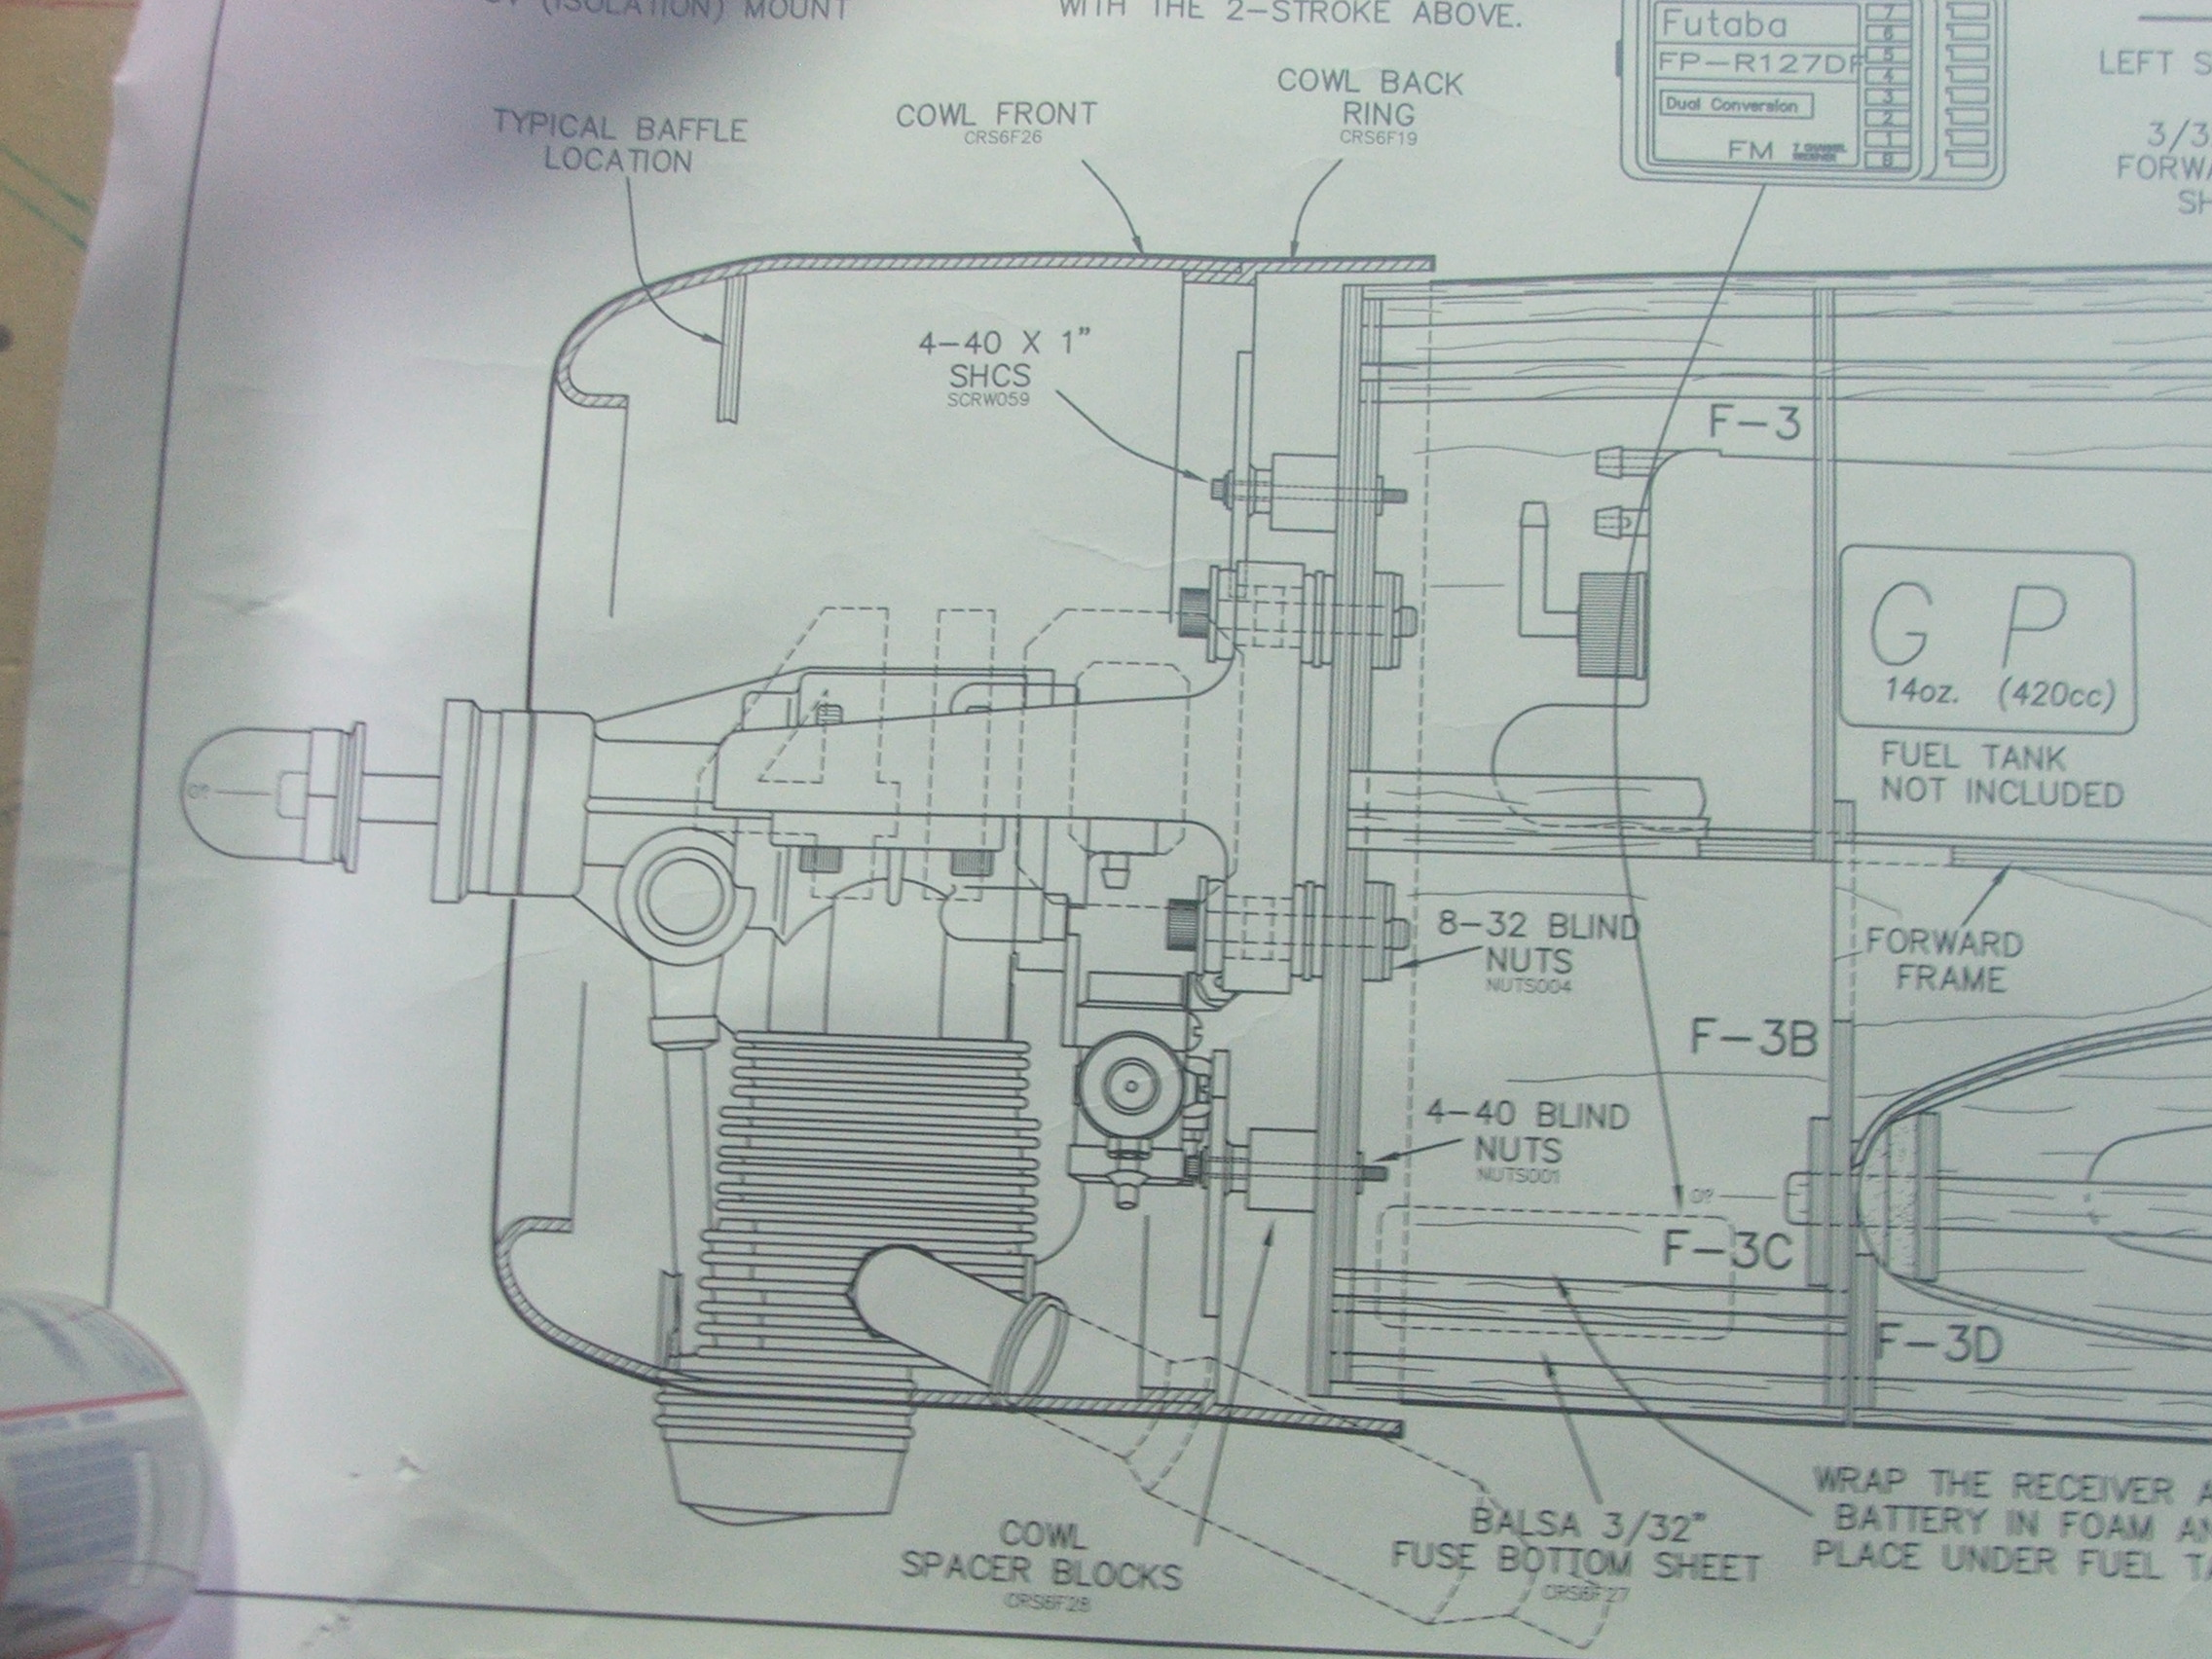 How Critical Is Fuel Tank Level In Relation To Carb Page 2 Rcu 420cc Engine Diagram The Placement Spooked Me A Bit So I Bought Pumped Im Still Learning Guess Was Also Taught Keep Spraybar Middle Of